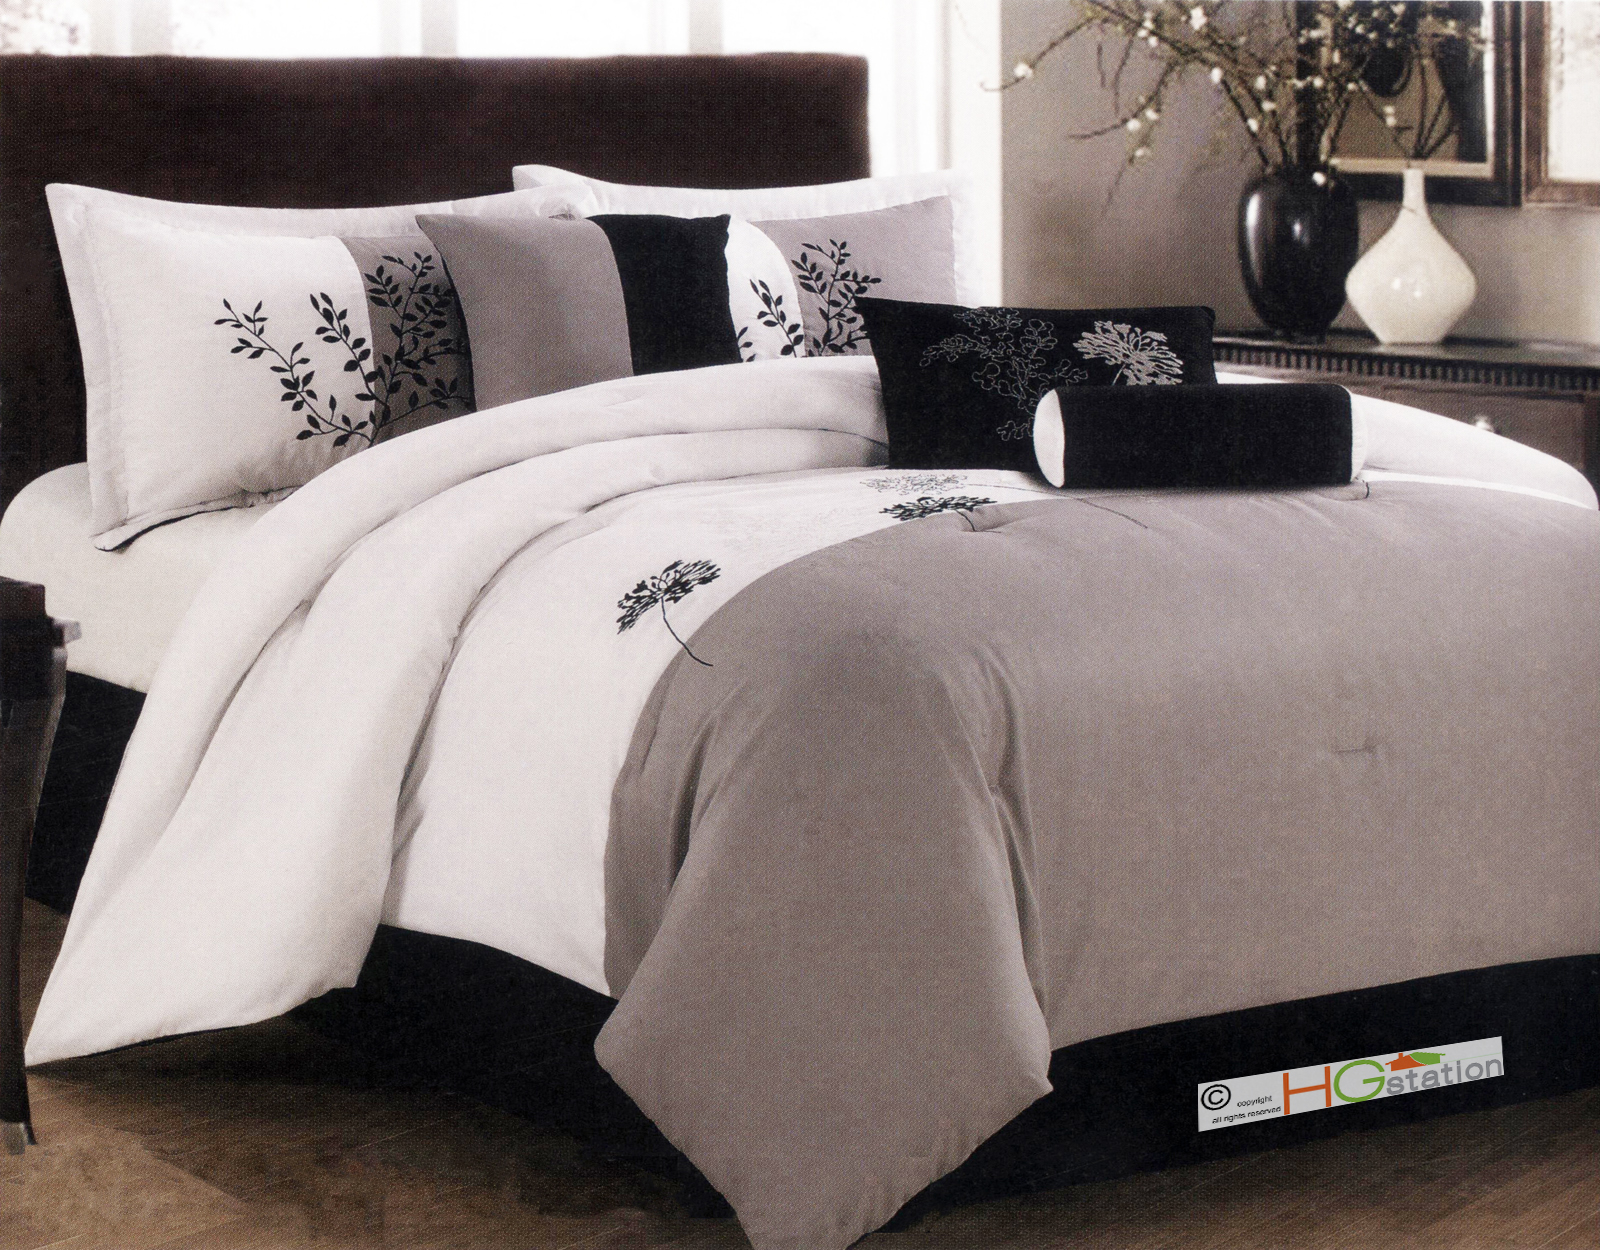 Black White Taupe Bedroom Of 7 Pc Soft Striped Floral Leaves Embroidery Comforter Set